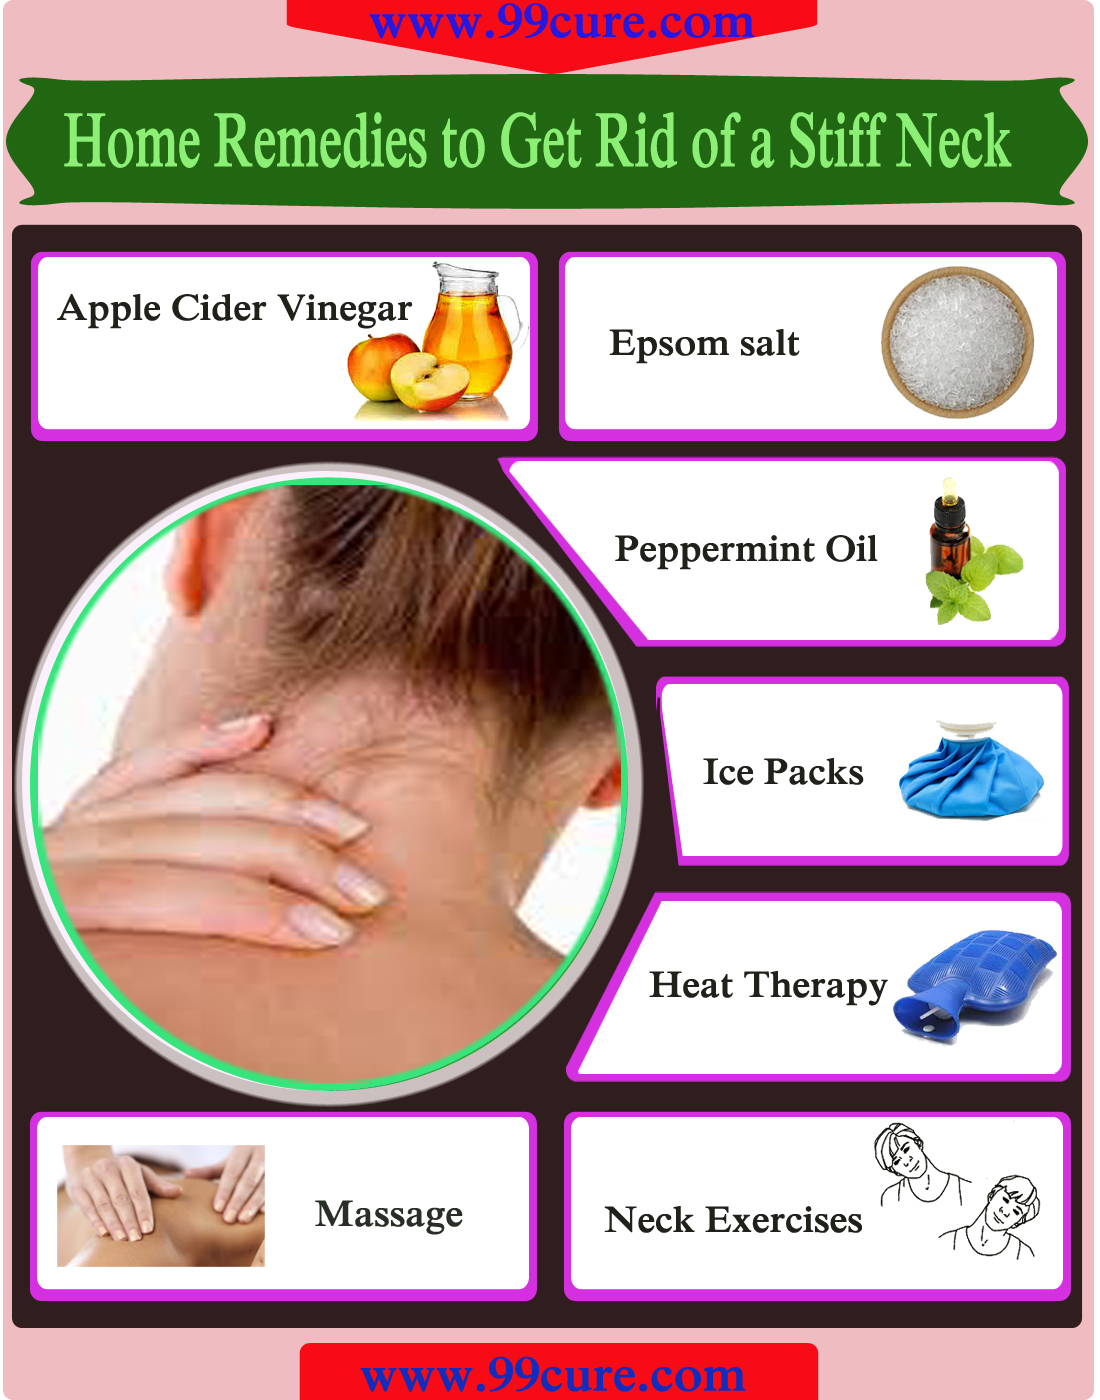 Home Remedies to Get Rid of a Stiff Neck